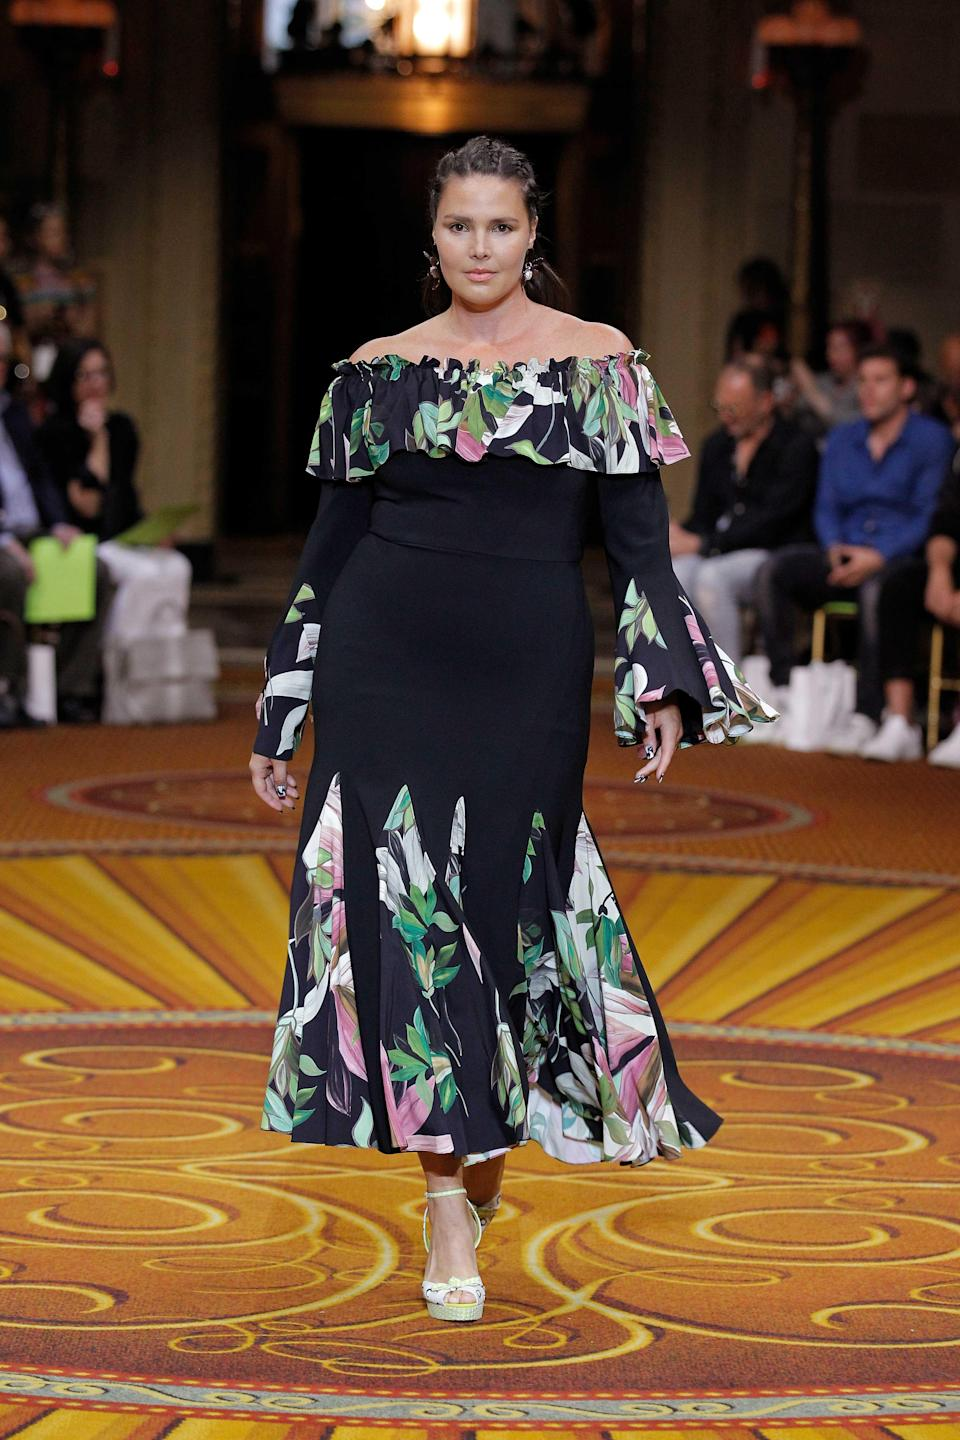 <p>Candice Huffine has become a popular mainstay at New York Fashion Week, seen here walking for Christian Siriano's show wearing an off-the-shoulder dress. (Photo: Getty Images) </p>